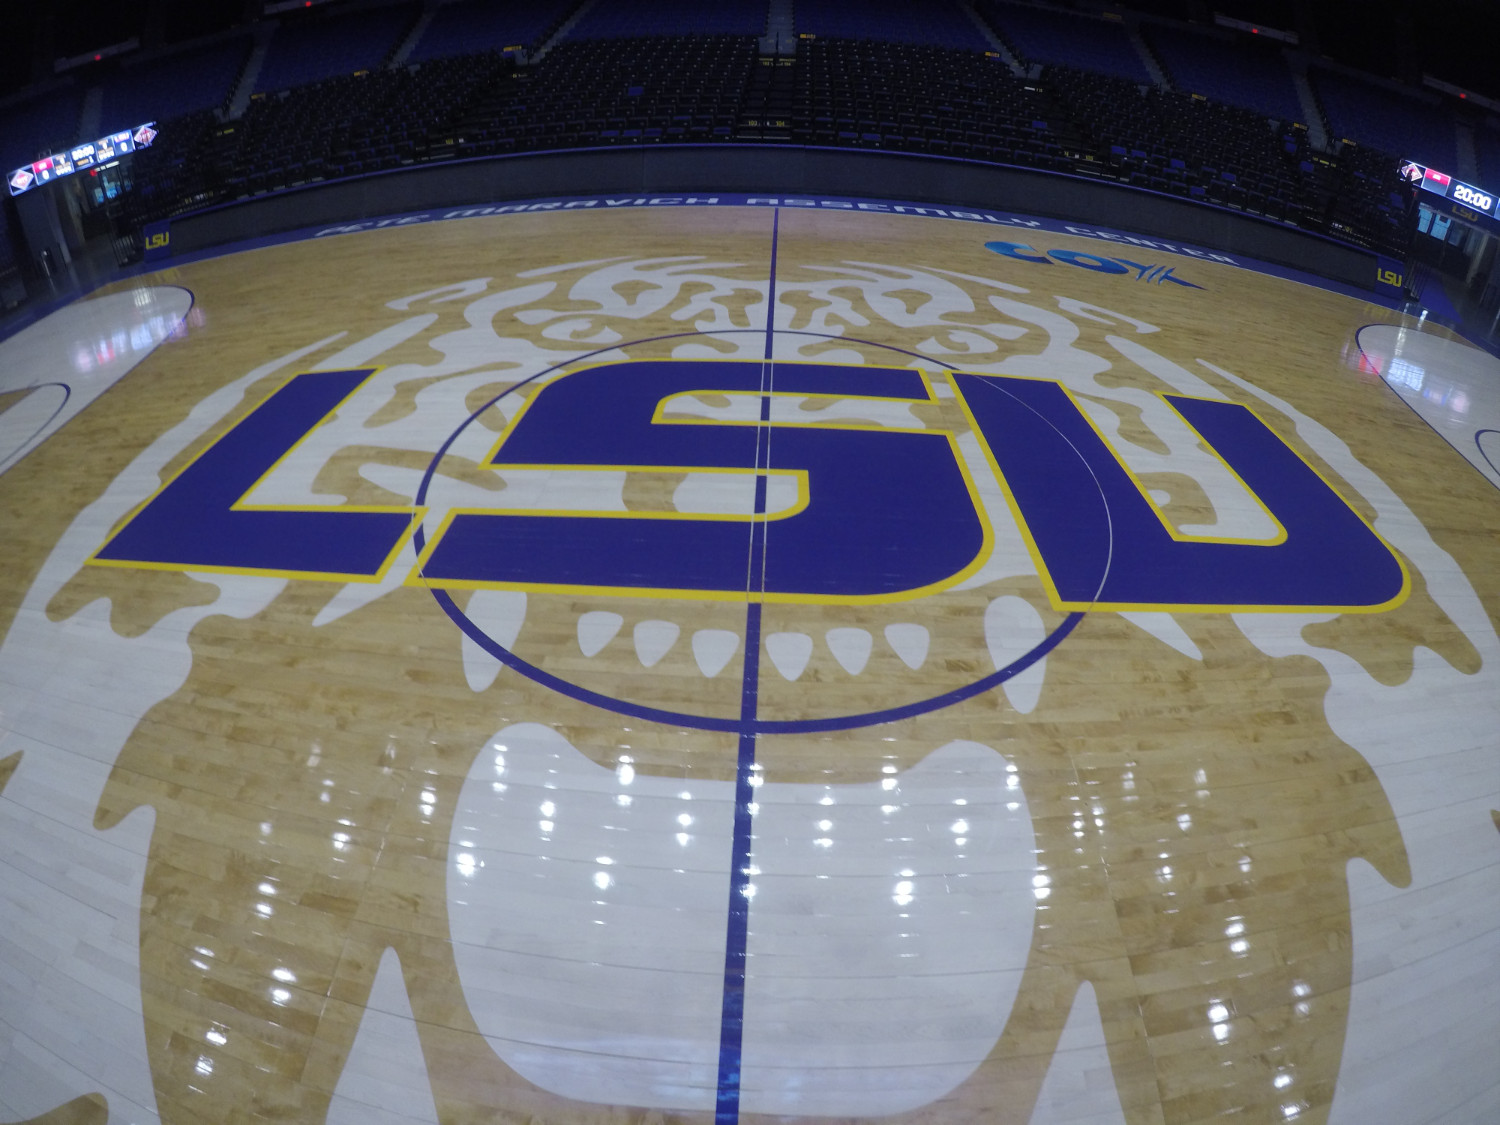 LSU Pete Maravich Assembly Center